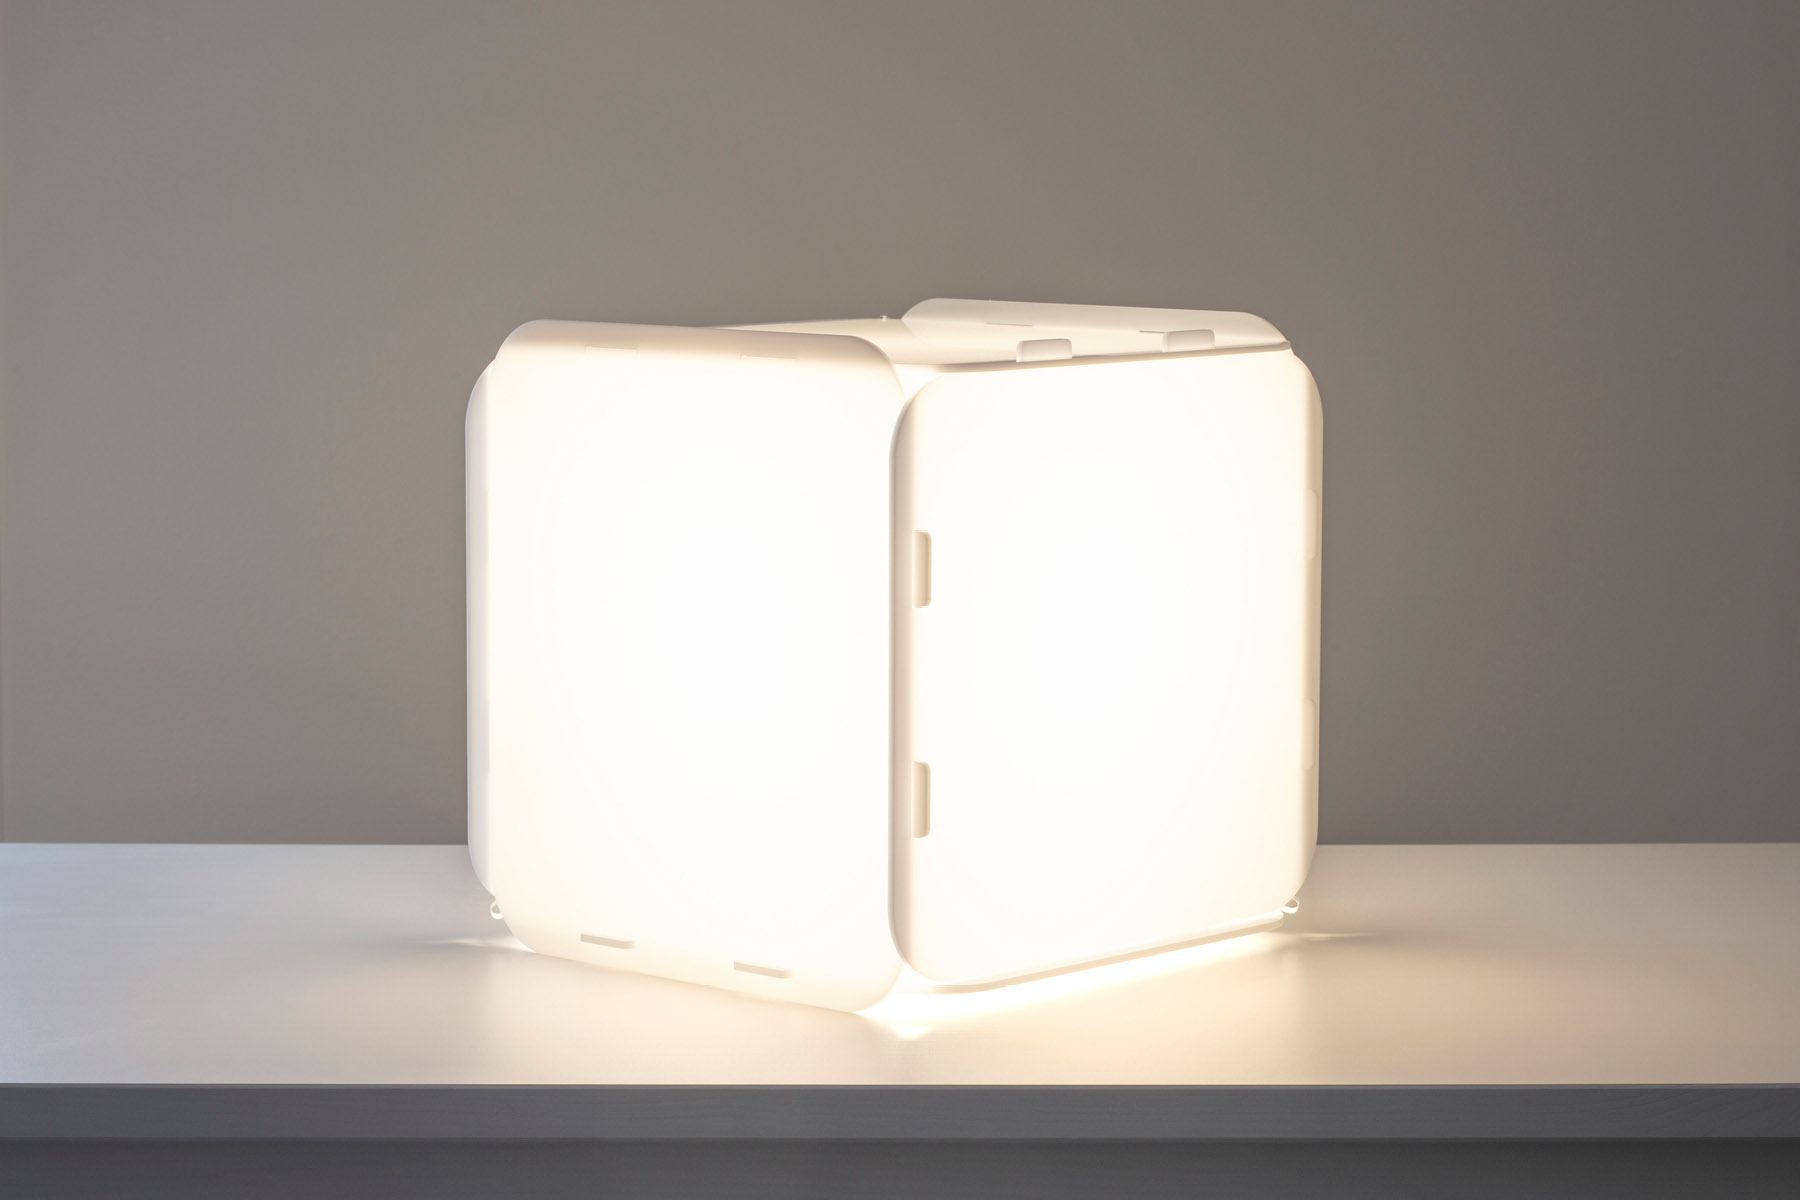 White cubic lamp with the light on